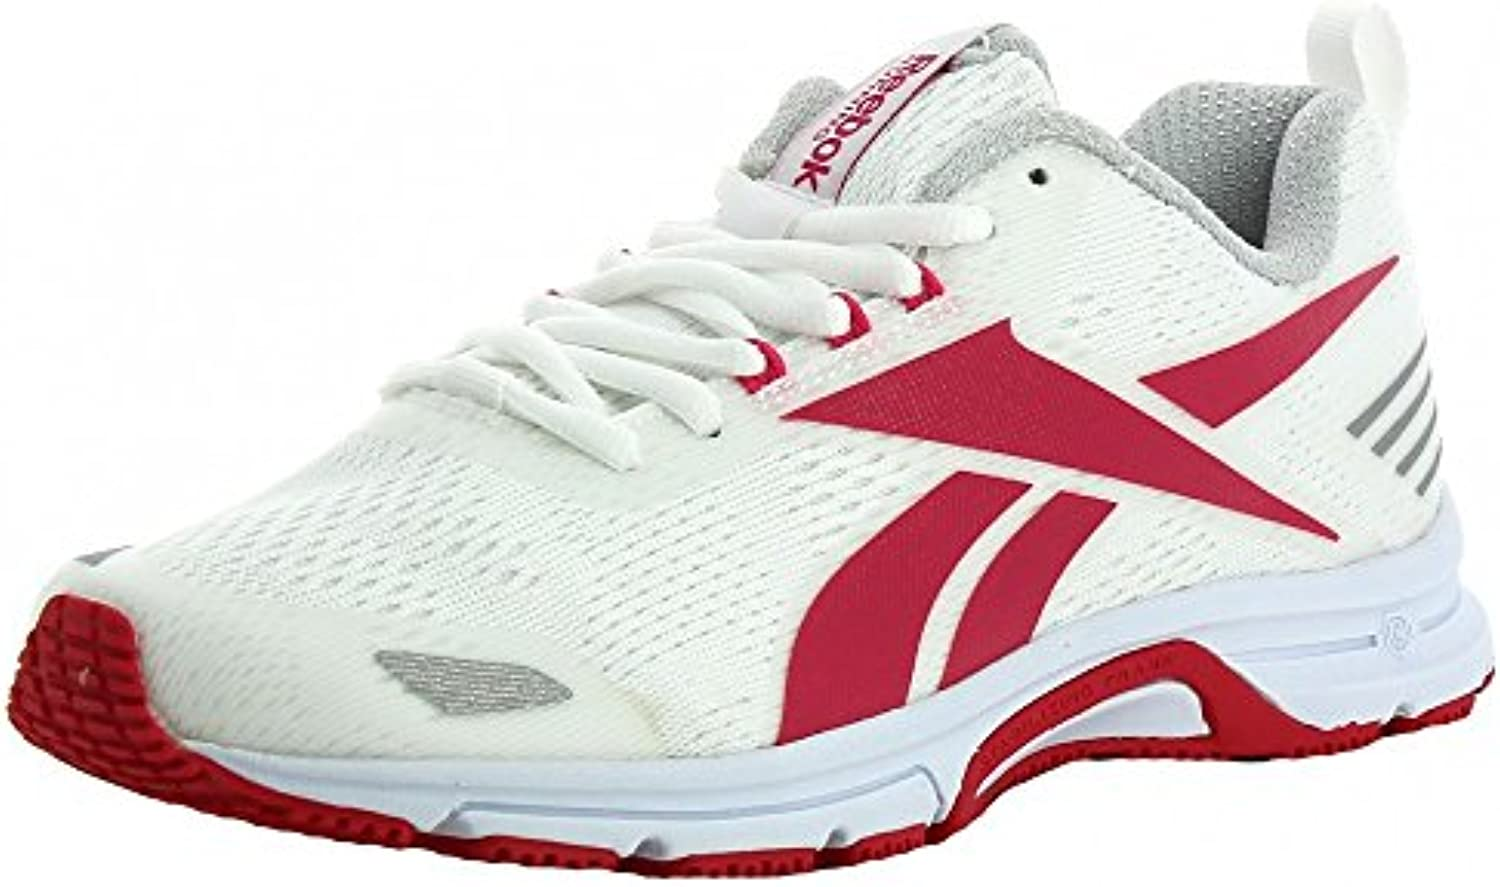 7550c02091e Reebok Women s Bd5478 Trail Trail Trail Running Shoes Parent B01N2WL37Q  3b601b